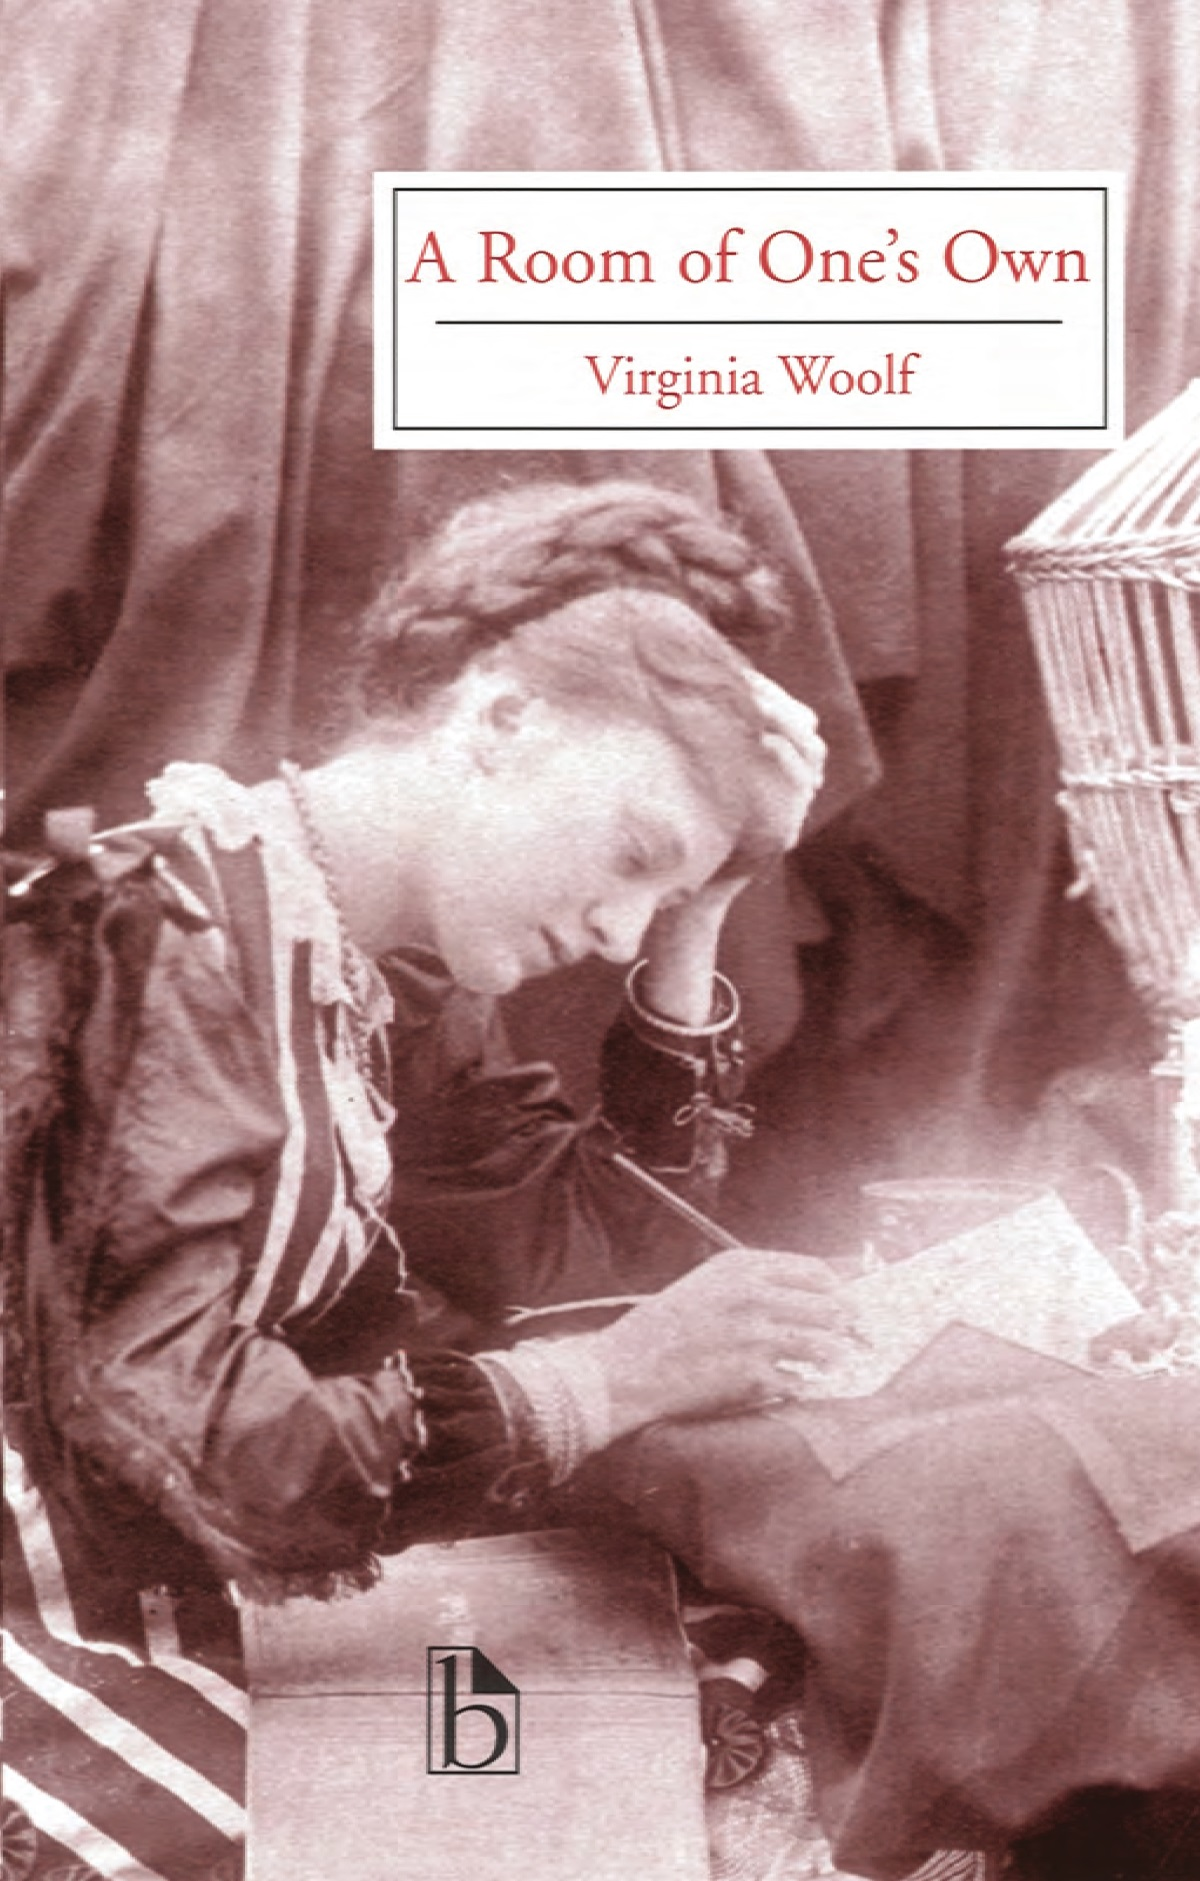 study in mood virginia woolf s a Exploring virginia woolf's between the acts introduction this free course, exploring virginia woolf's between the acts, is designed to explore the historical context of the final work of virginia woolf, one of the most significant modernist writers of the twentieth century.